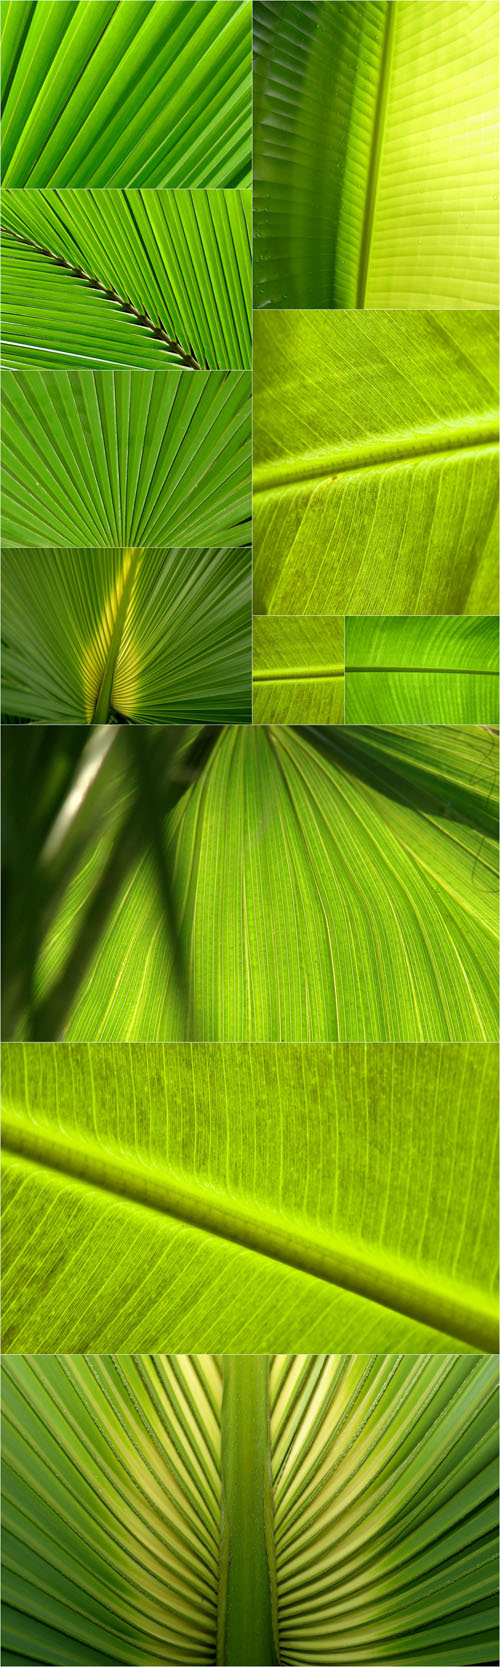 Palm Leaf Backgrounds